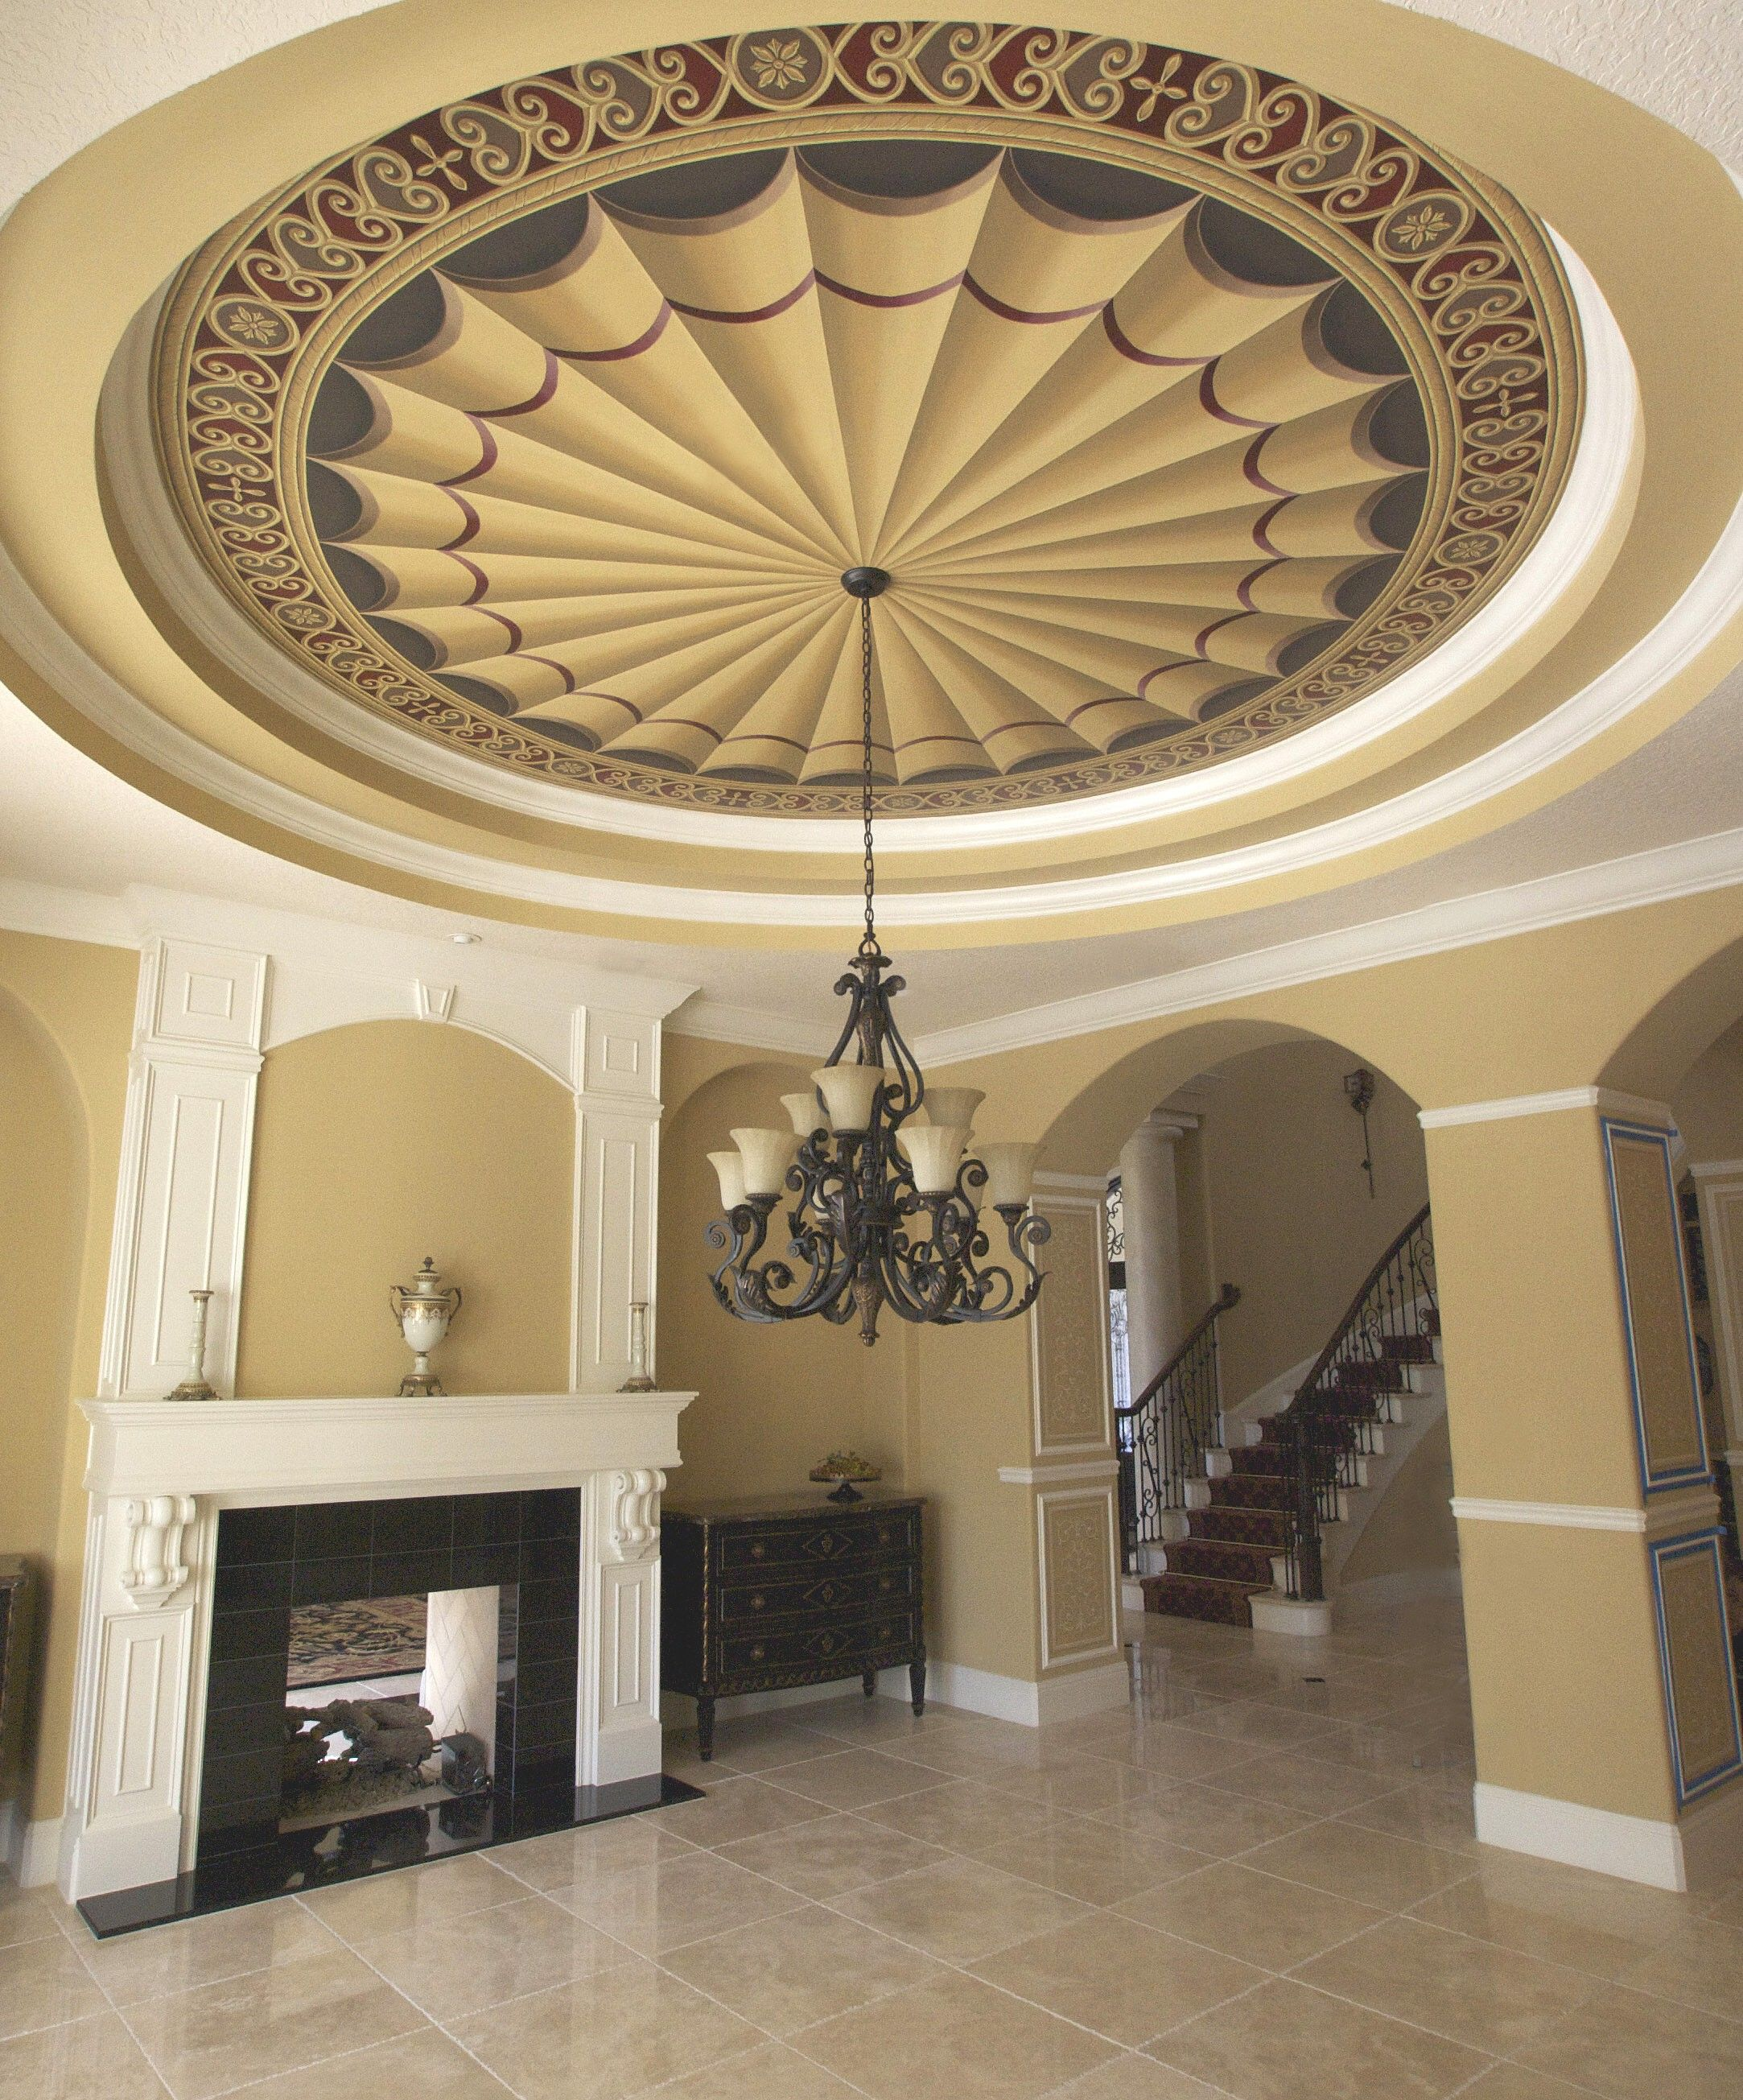 Dining Room Ceiling Deland Florida By Jeff Huckaby False Ceiling Design Bedroom False Ceiling Design Ceiling Design